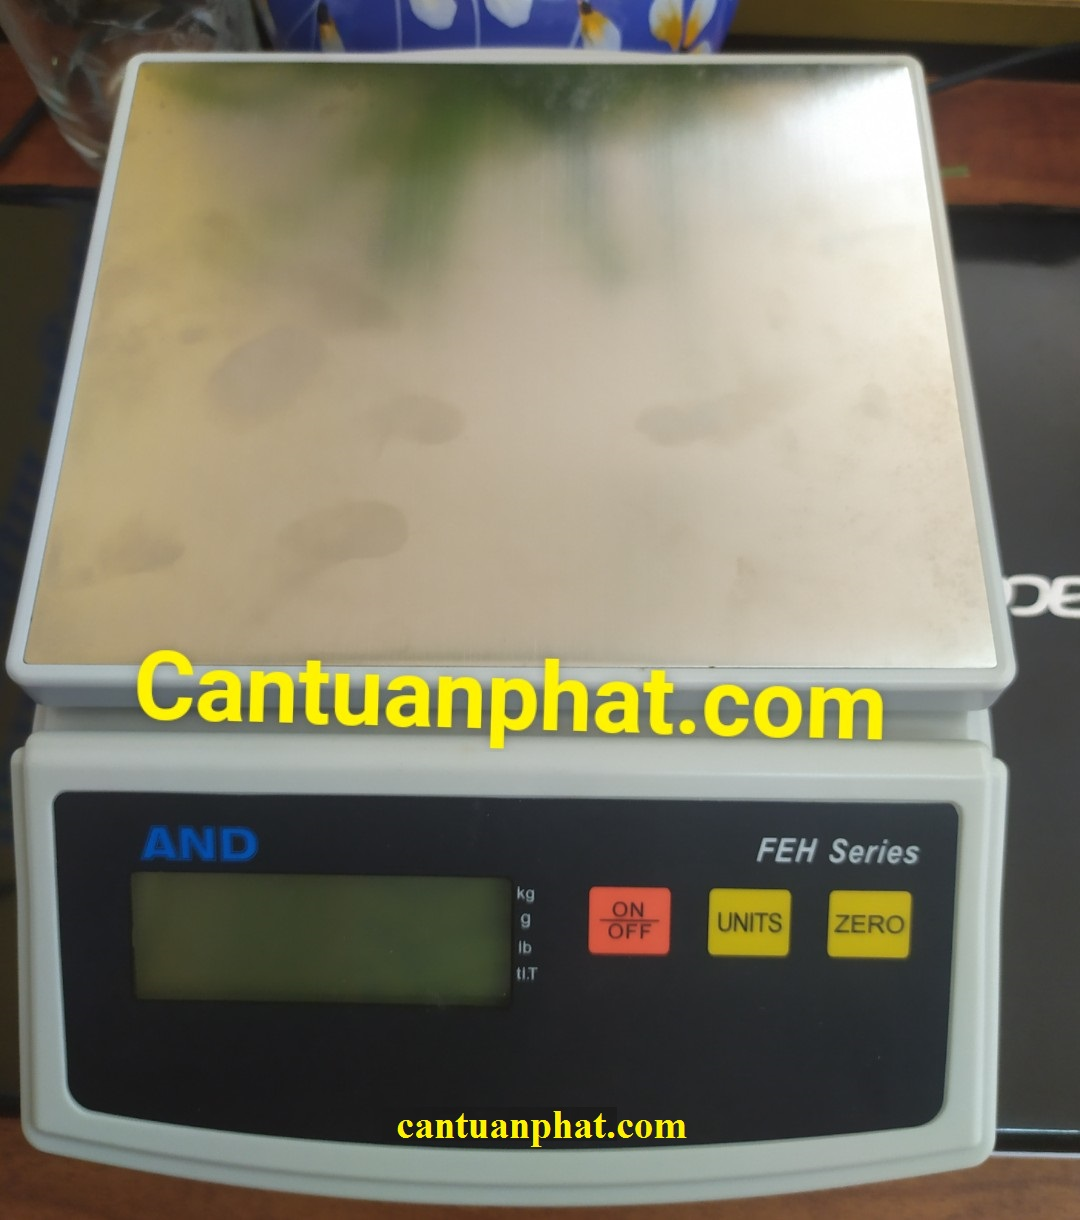 http://cantuanphat.com/pic/Product/1922_637007933247815671.jpg